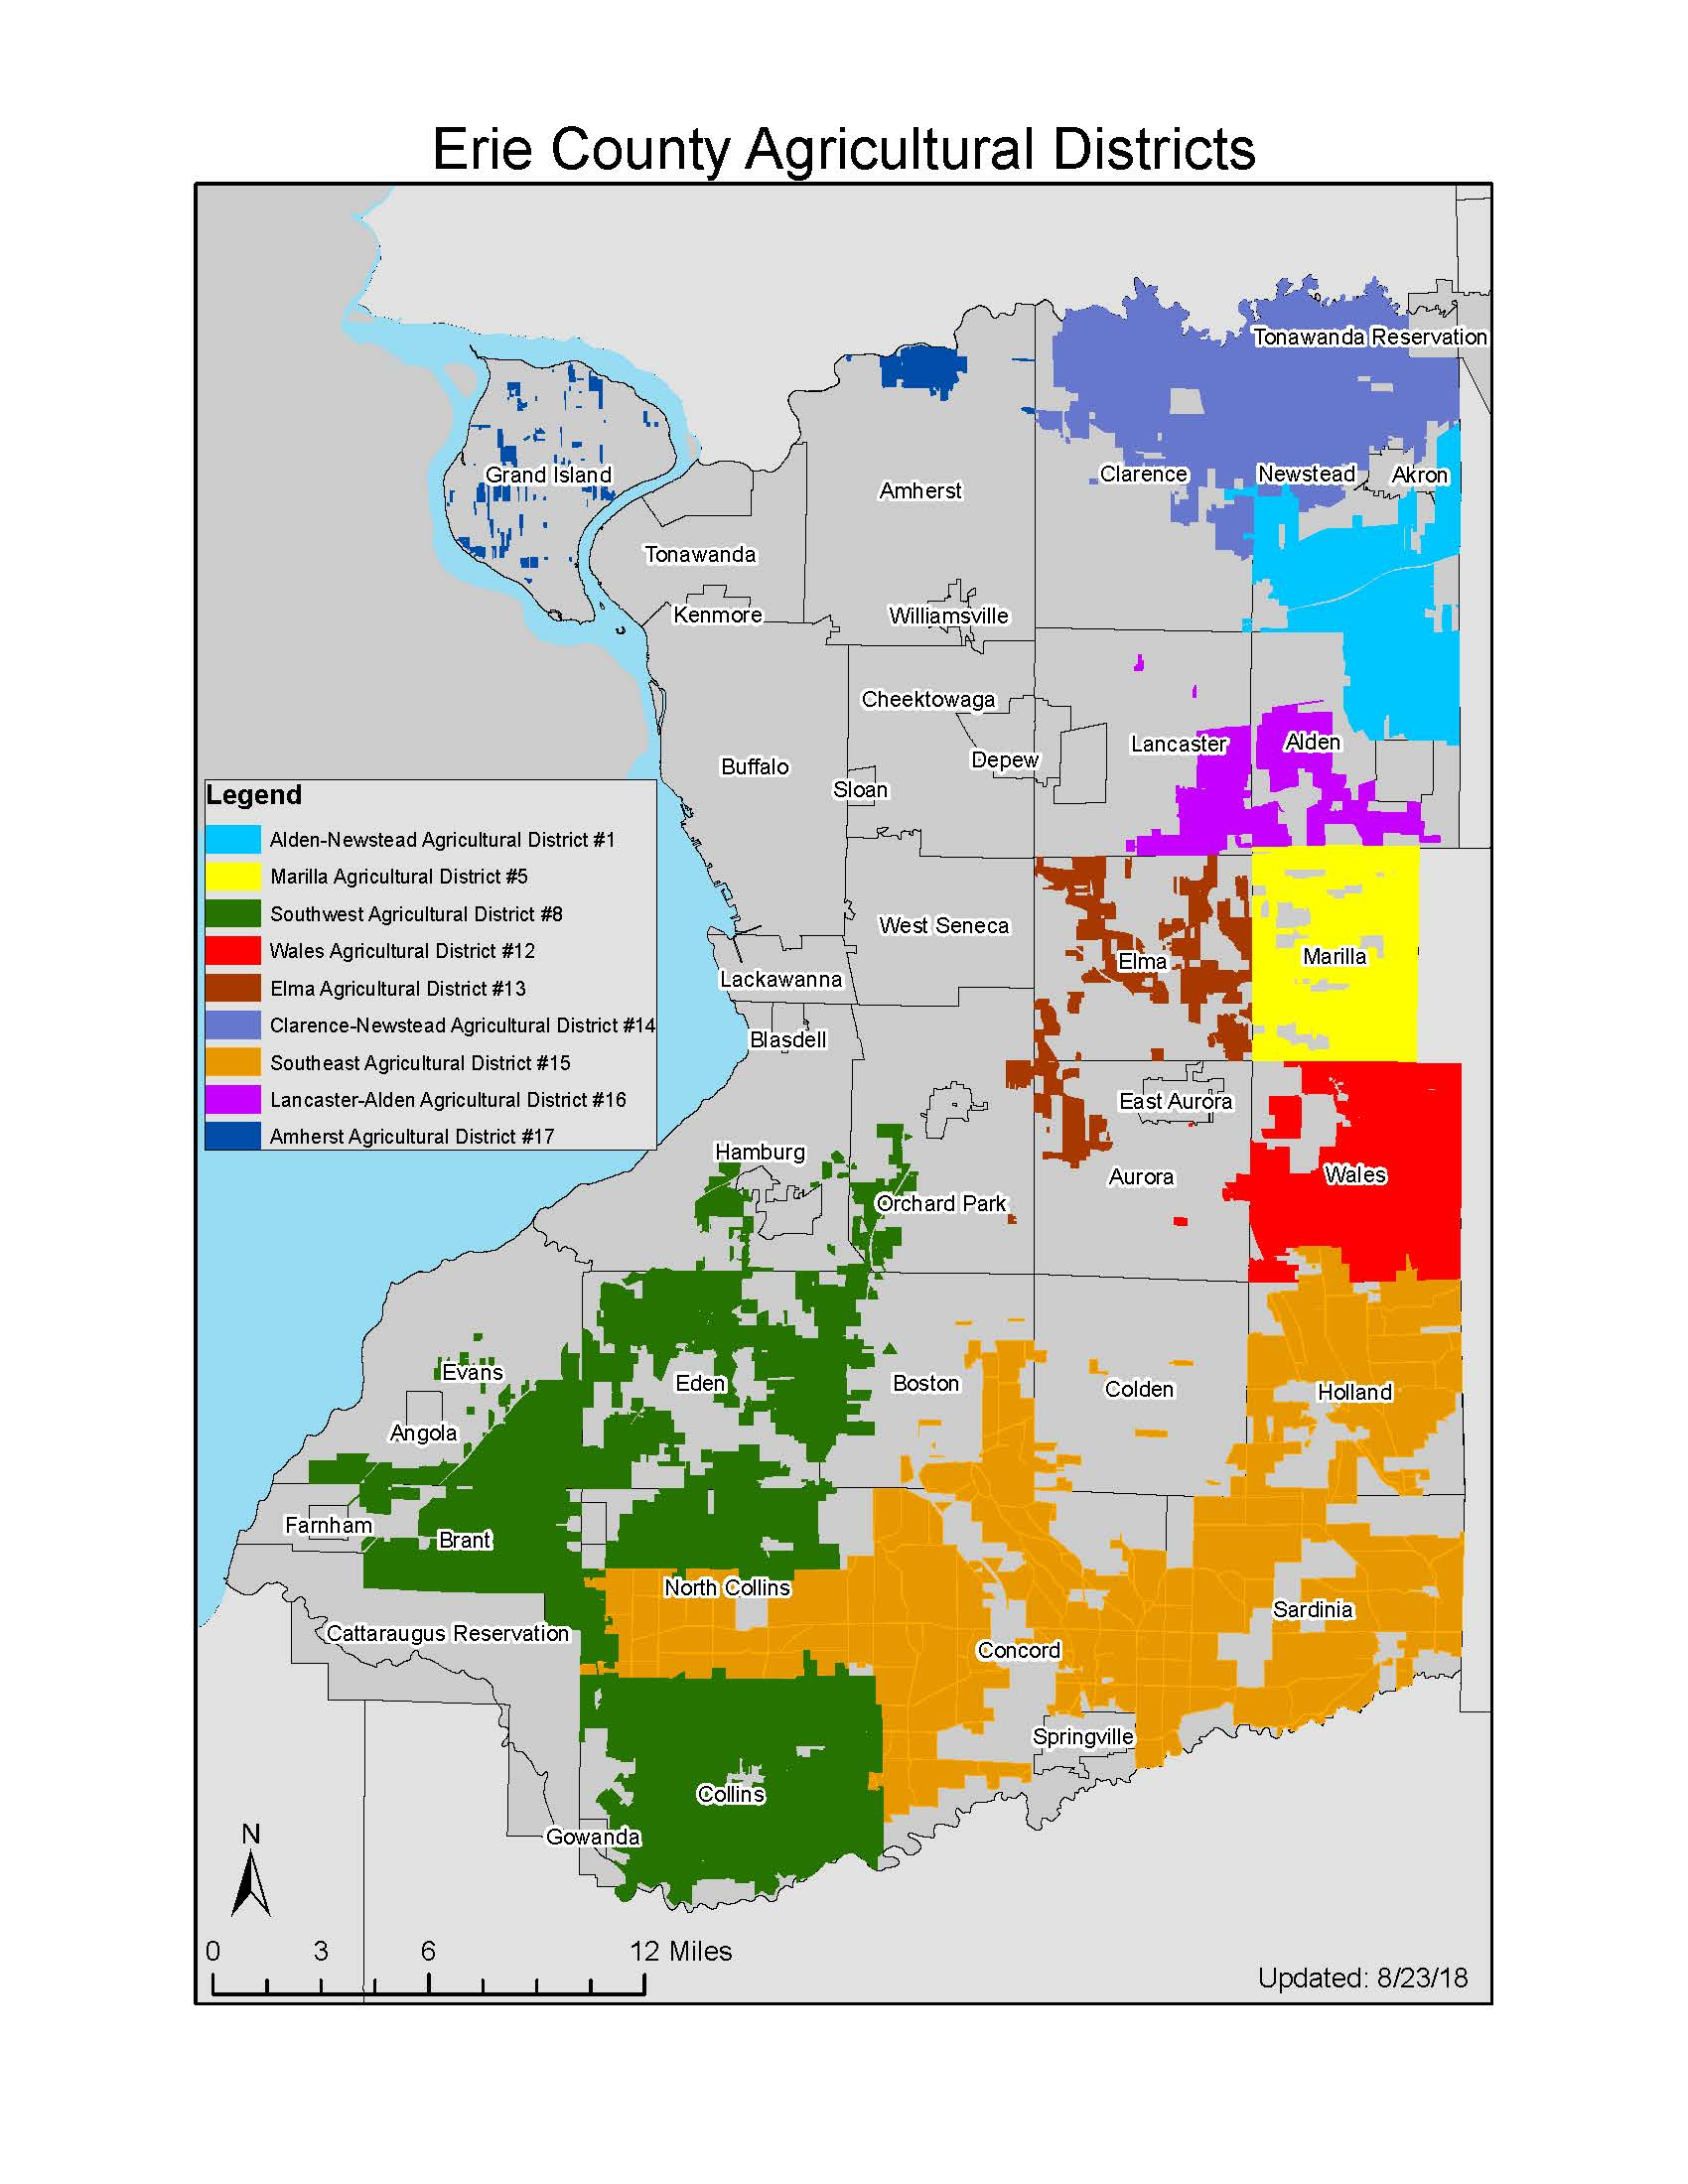 Map of All Erie County Agricultural Districts 2018